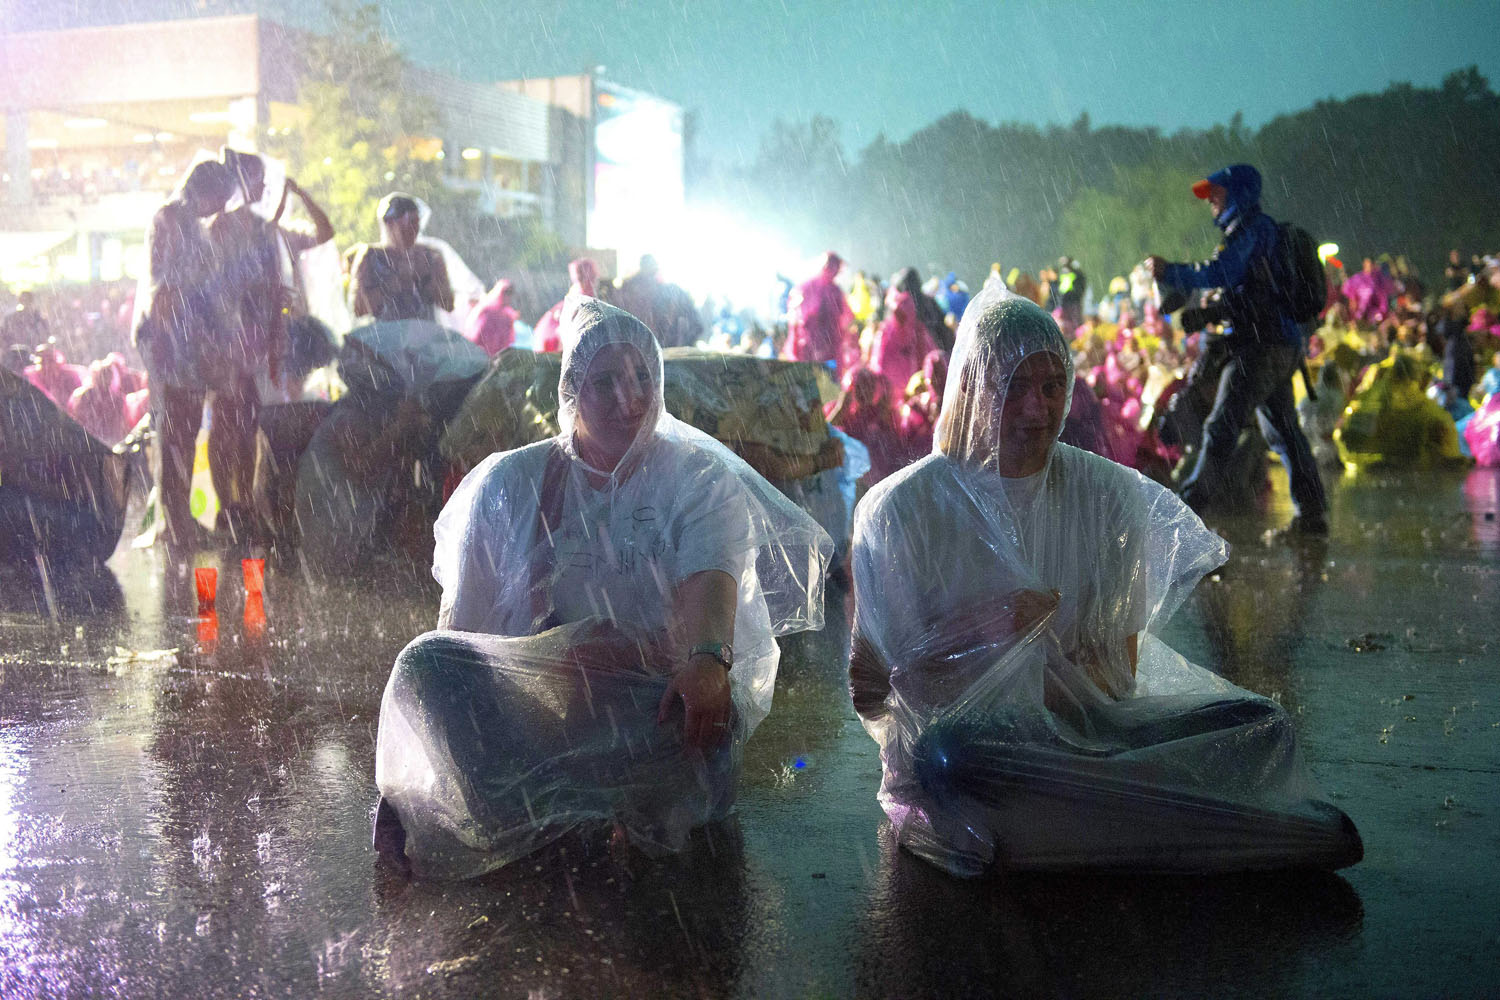 Jun. 9, 2014. Visitors wear rain ponchos during heavy rain and thunder at the 45th annual Pinkpop music festival in Landgraaf, The Netherlands.